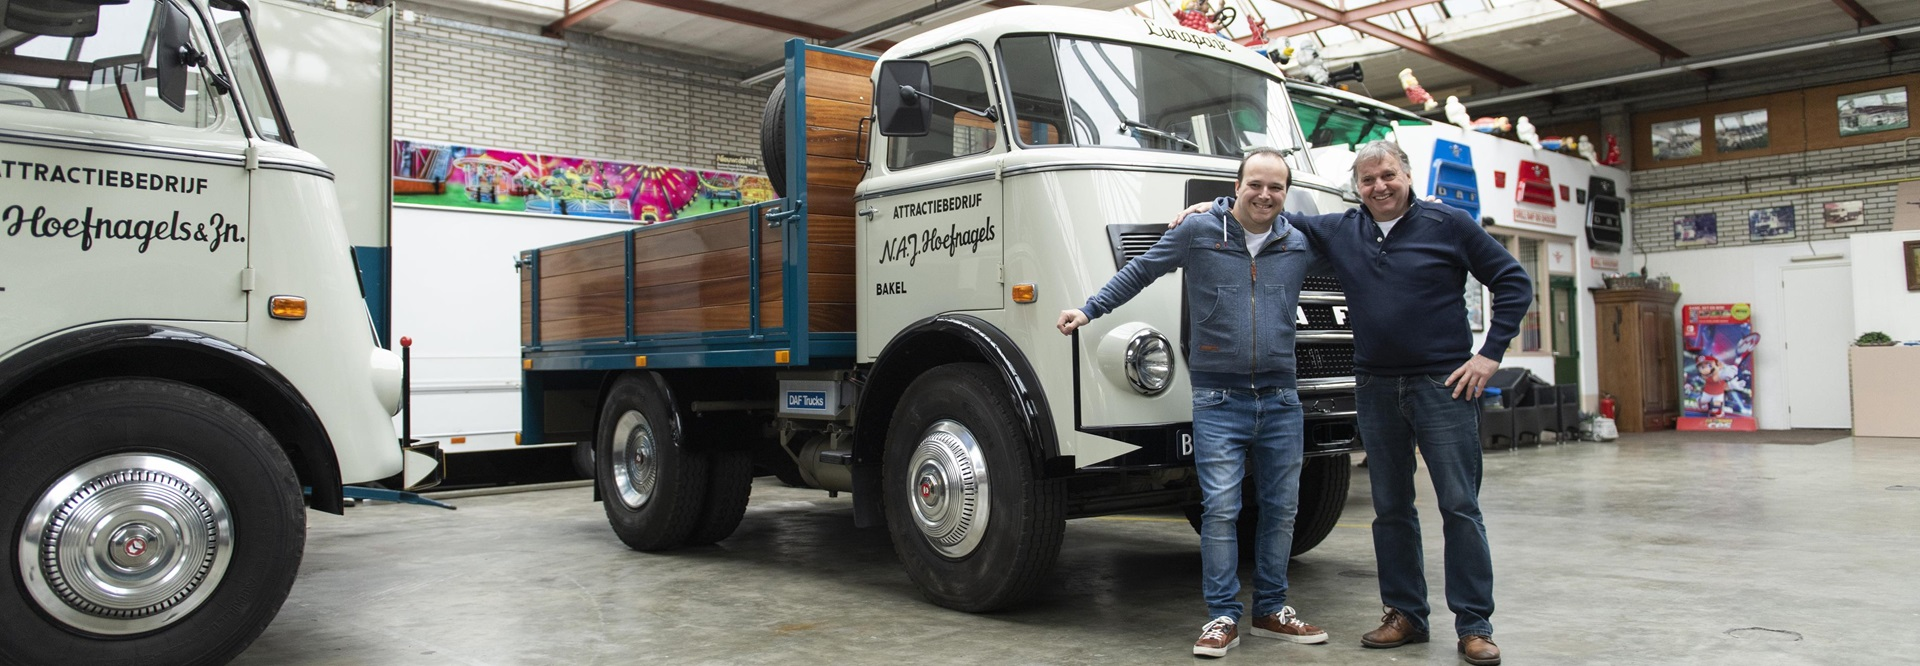 Oldest-DAF-truck-still-in-commercial-use-DAF-A1600-from-1968-main